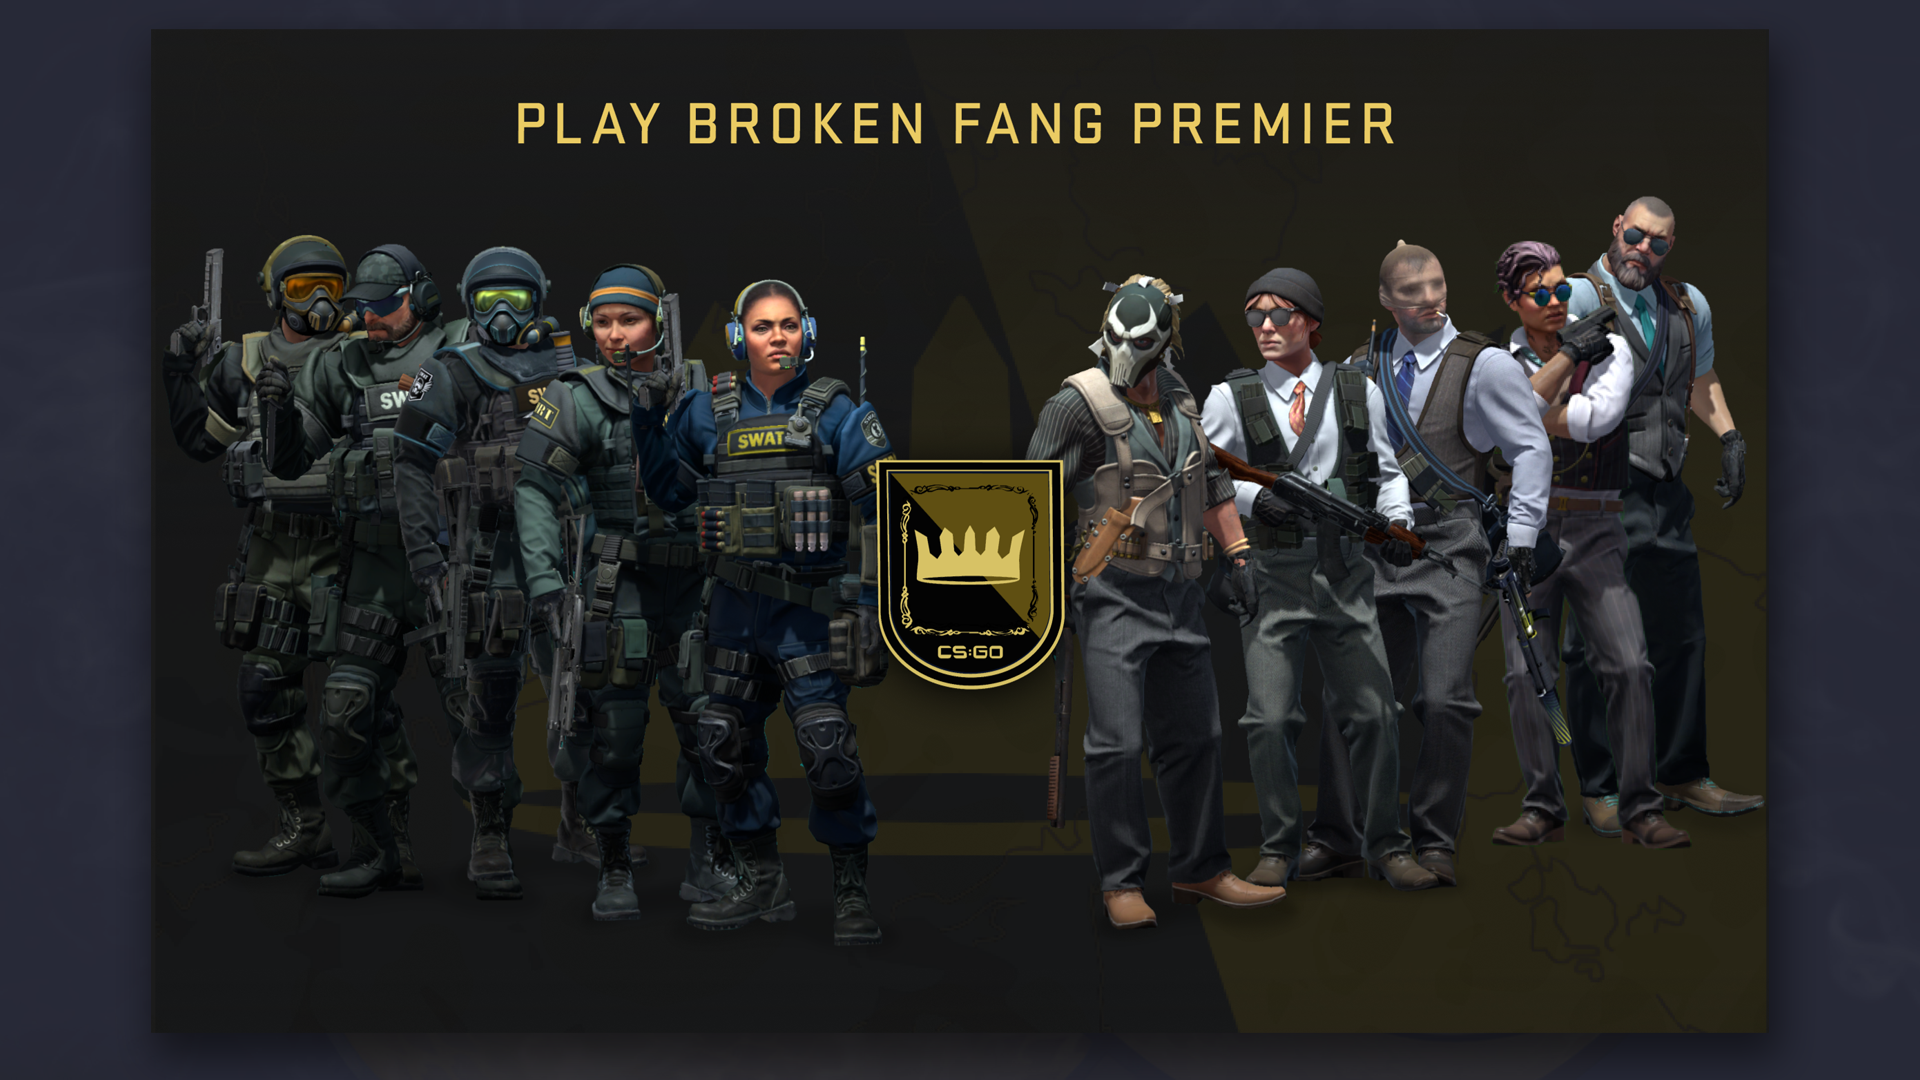 Introducing Operation Broken Fang